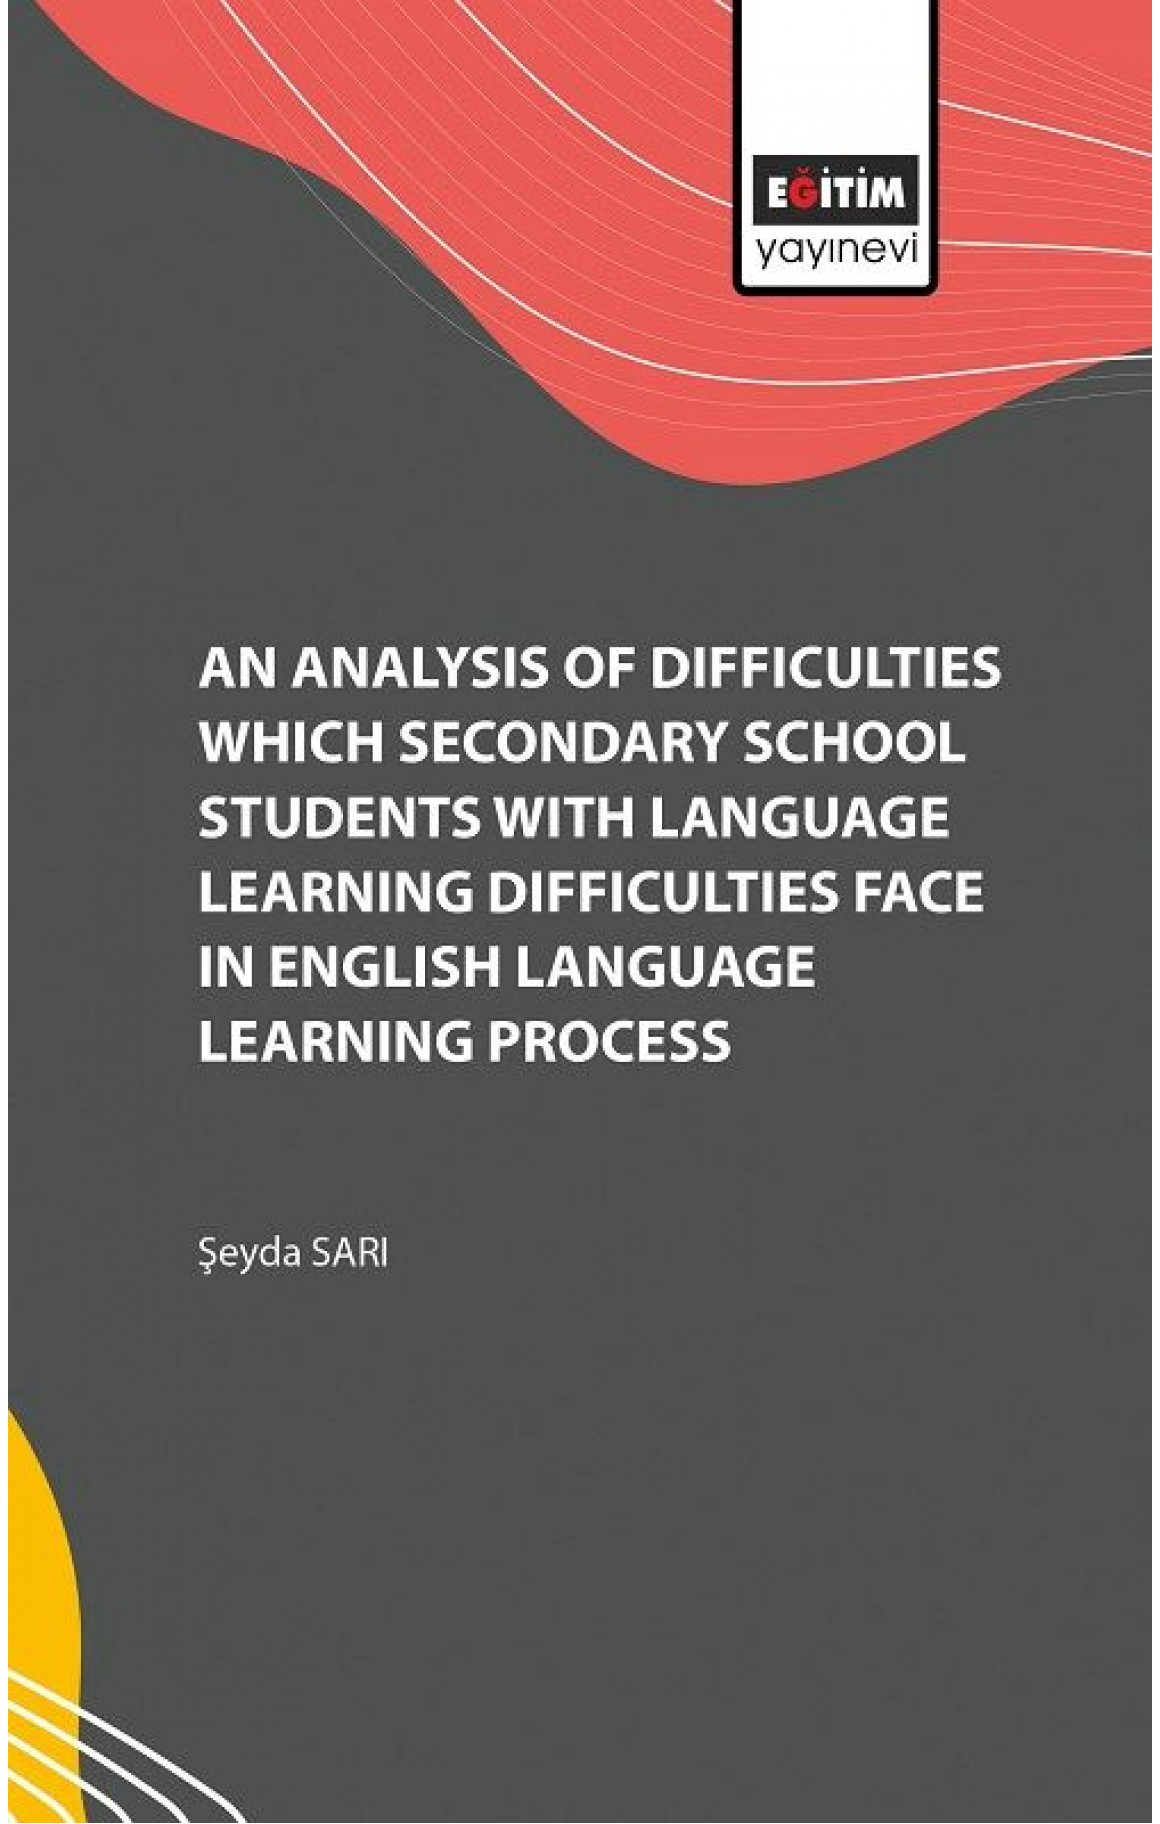 An Analysis of Difficulties Which Secondary School Students with Language Learning Difficulties Face